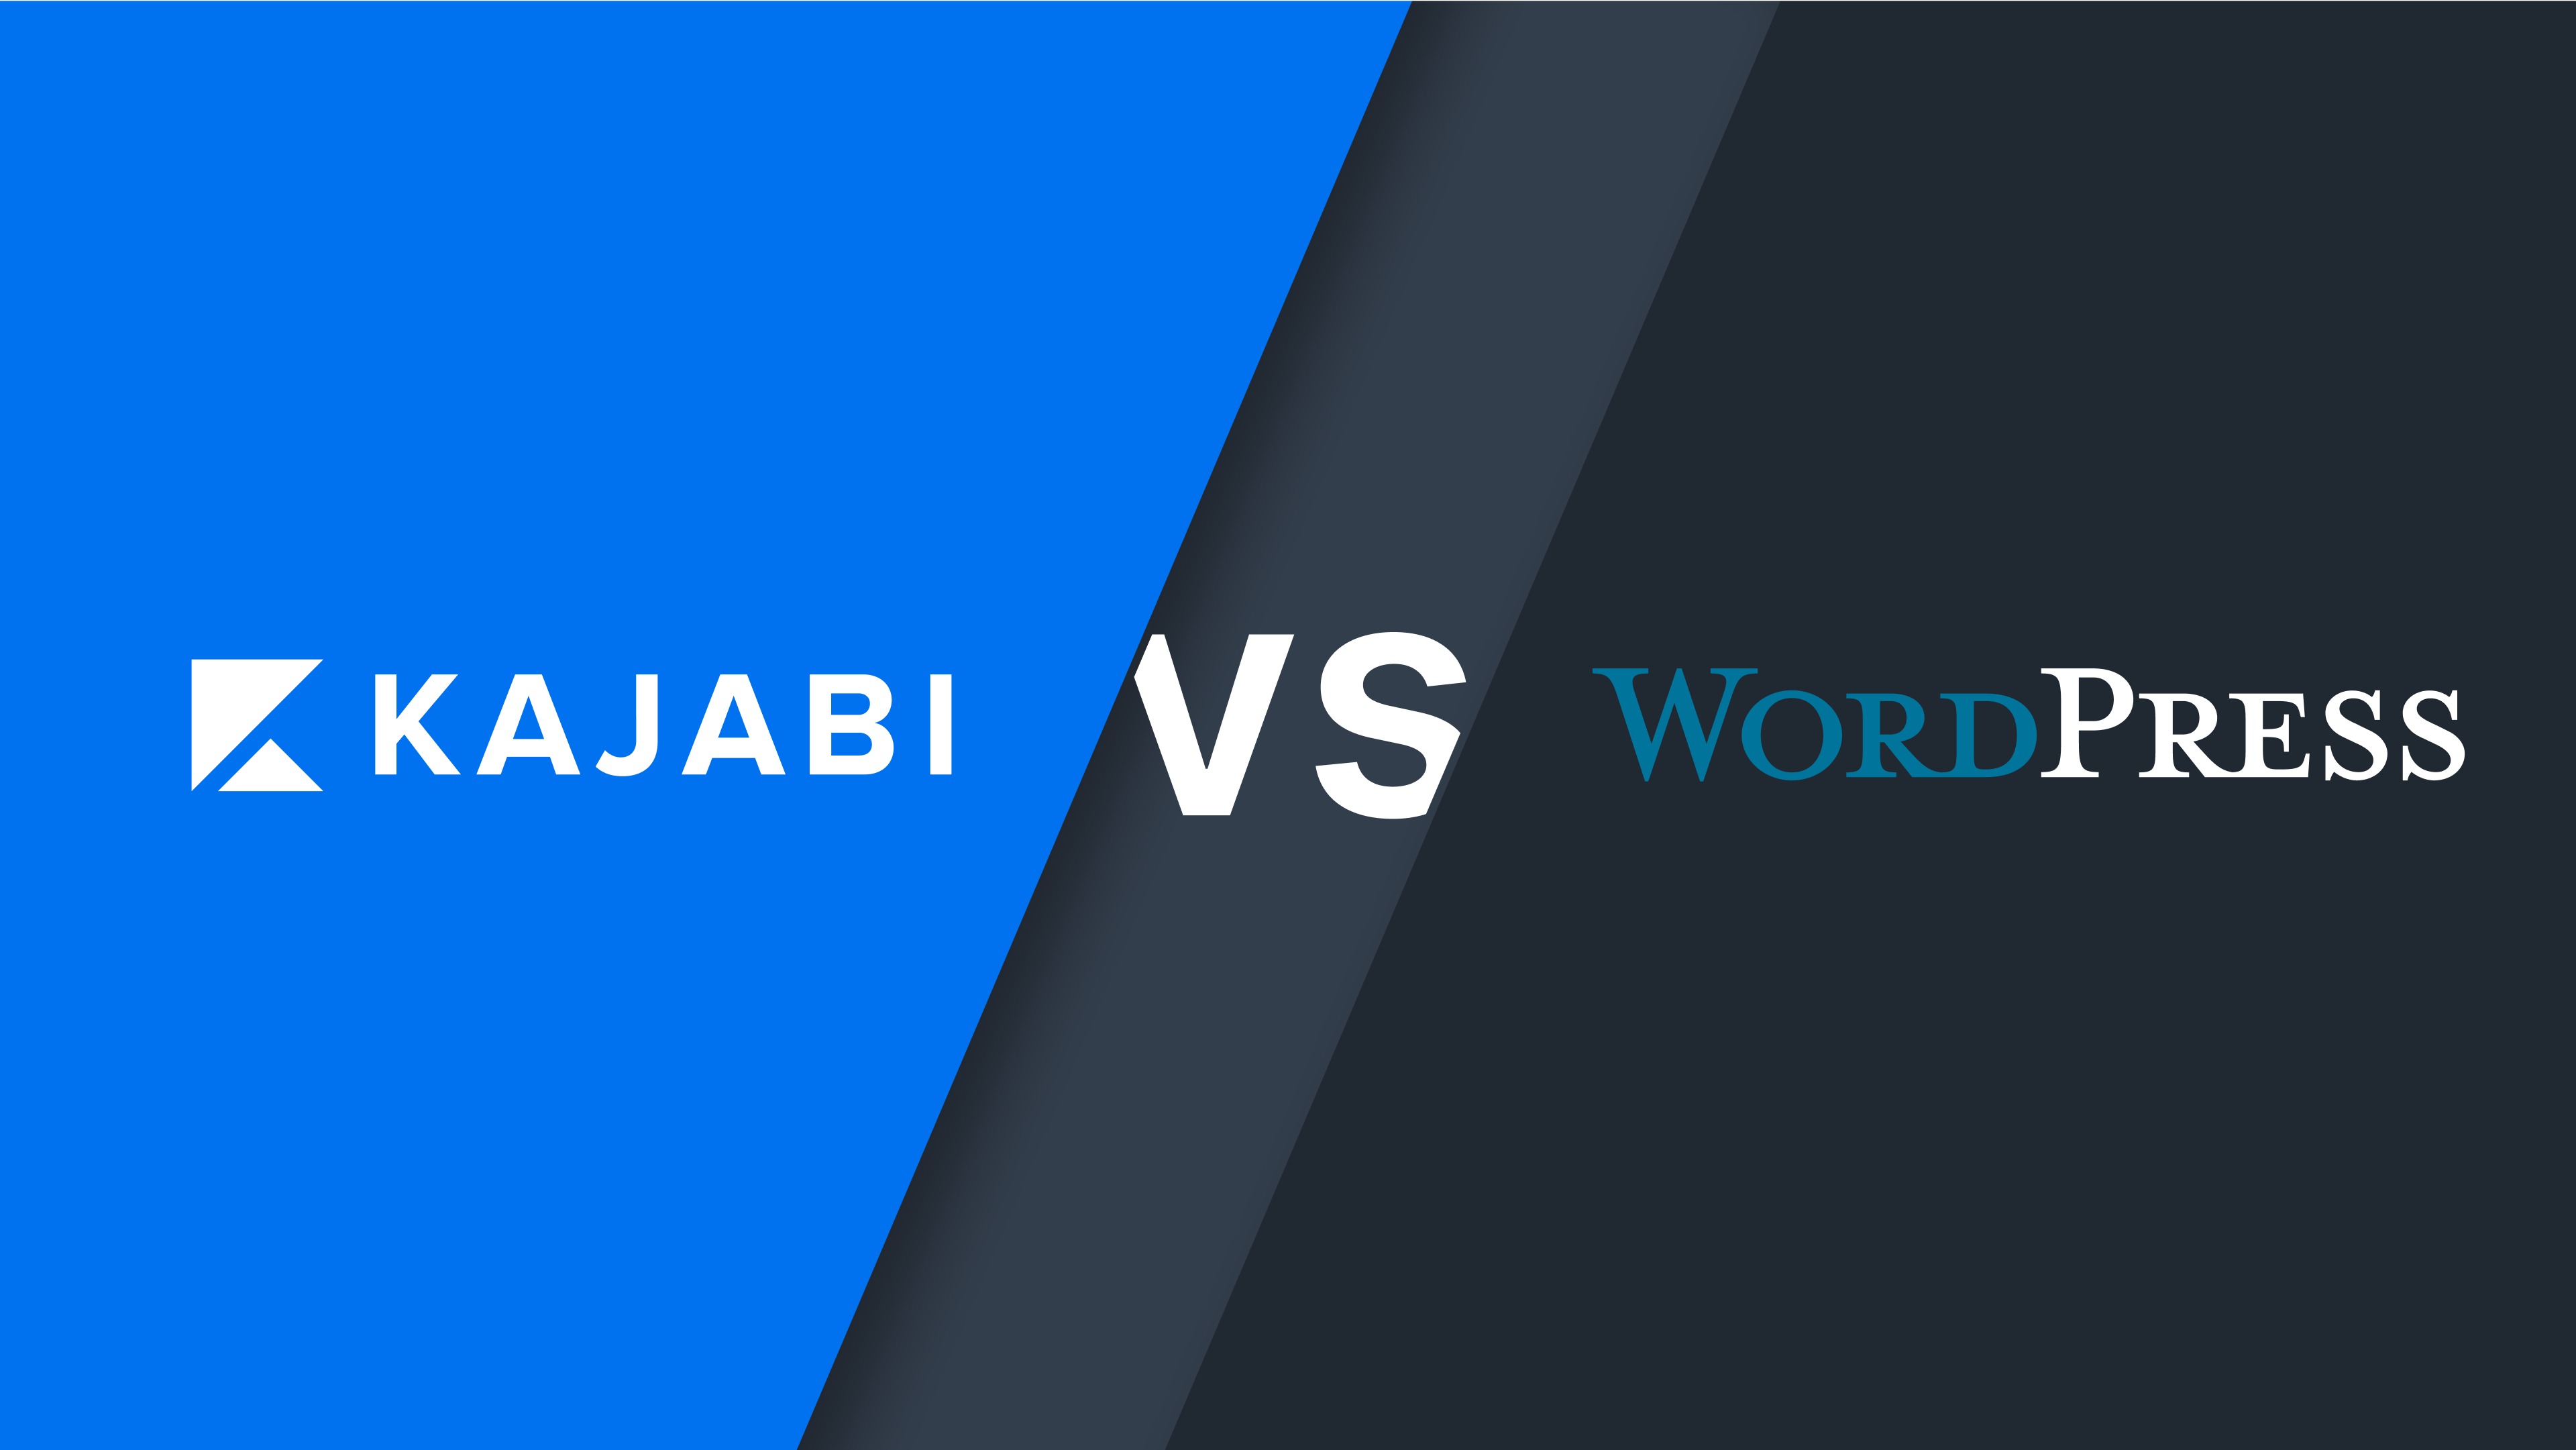 Kajabi vs. Wordpress: Which will support your knowledge commerce site best?